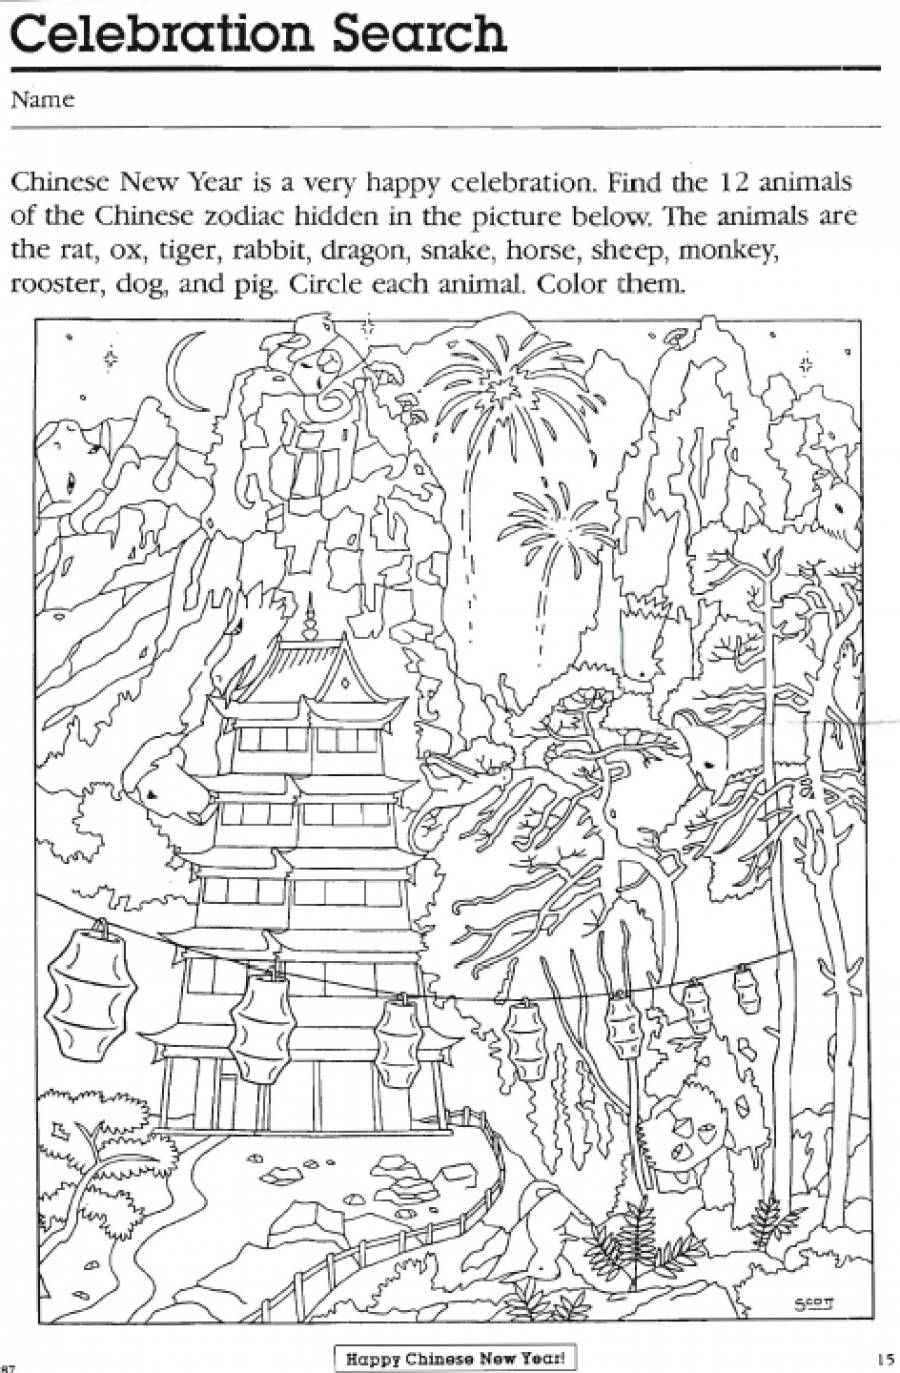 worksheet Hidden Picture Worksheets For Adults chinese new year hidden pictures free printable worksheets worksheets